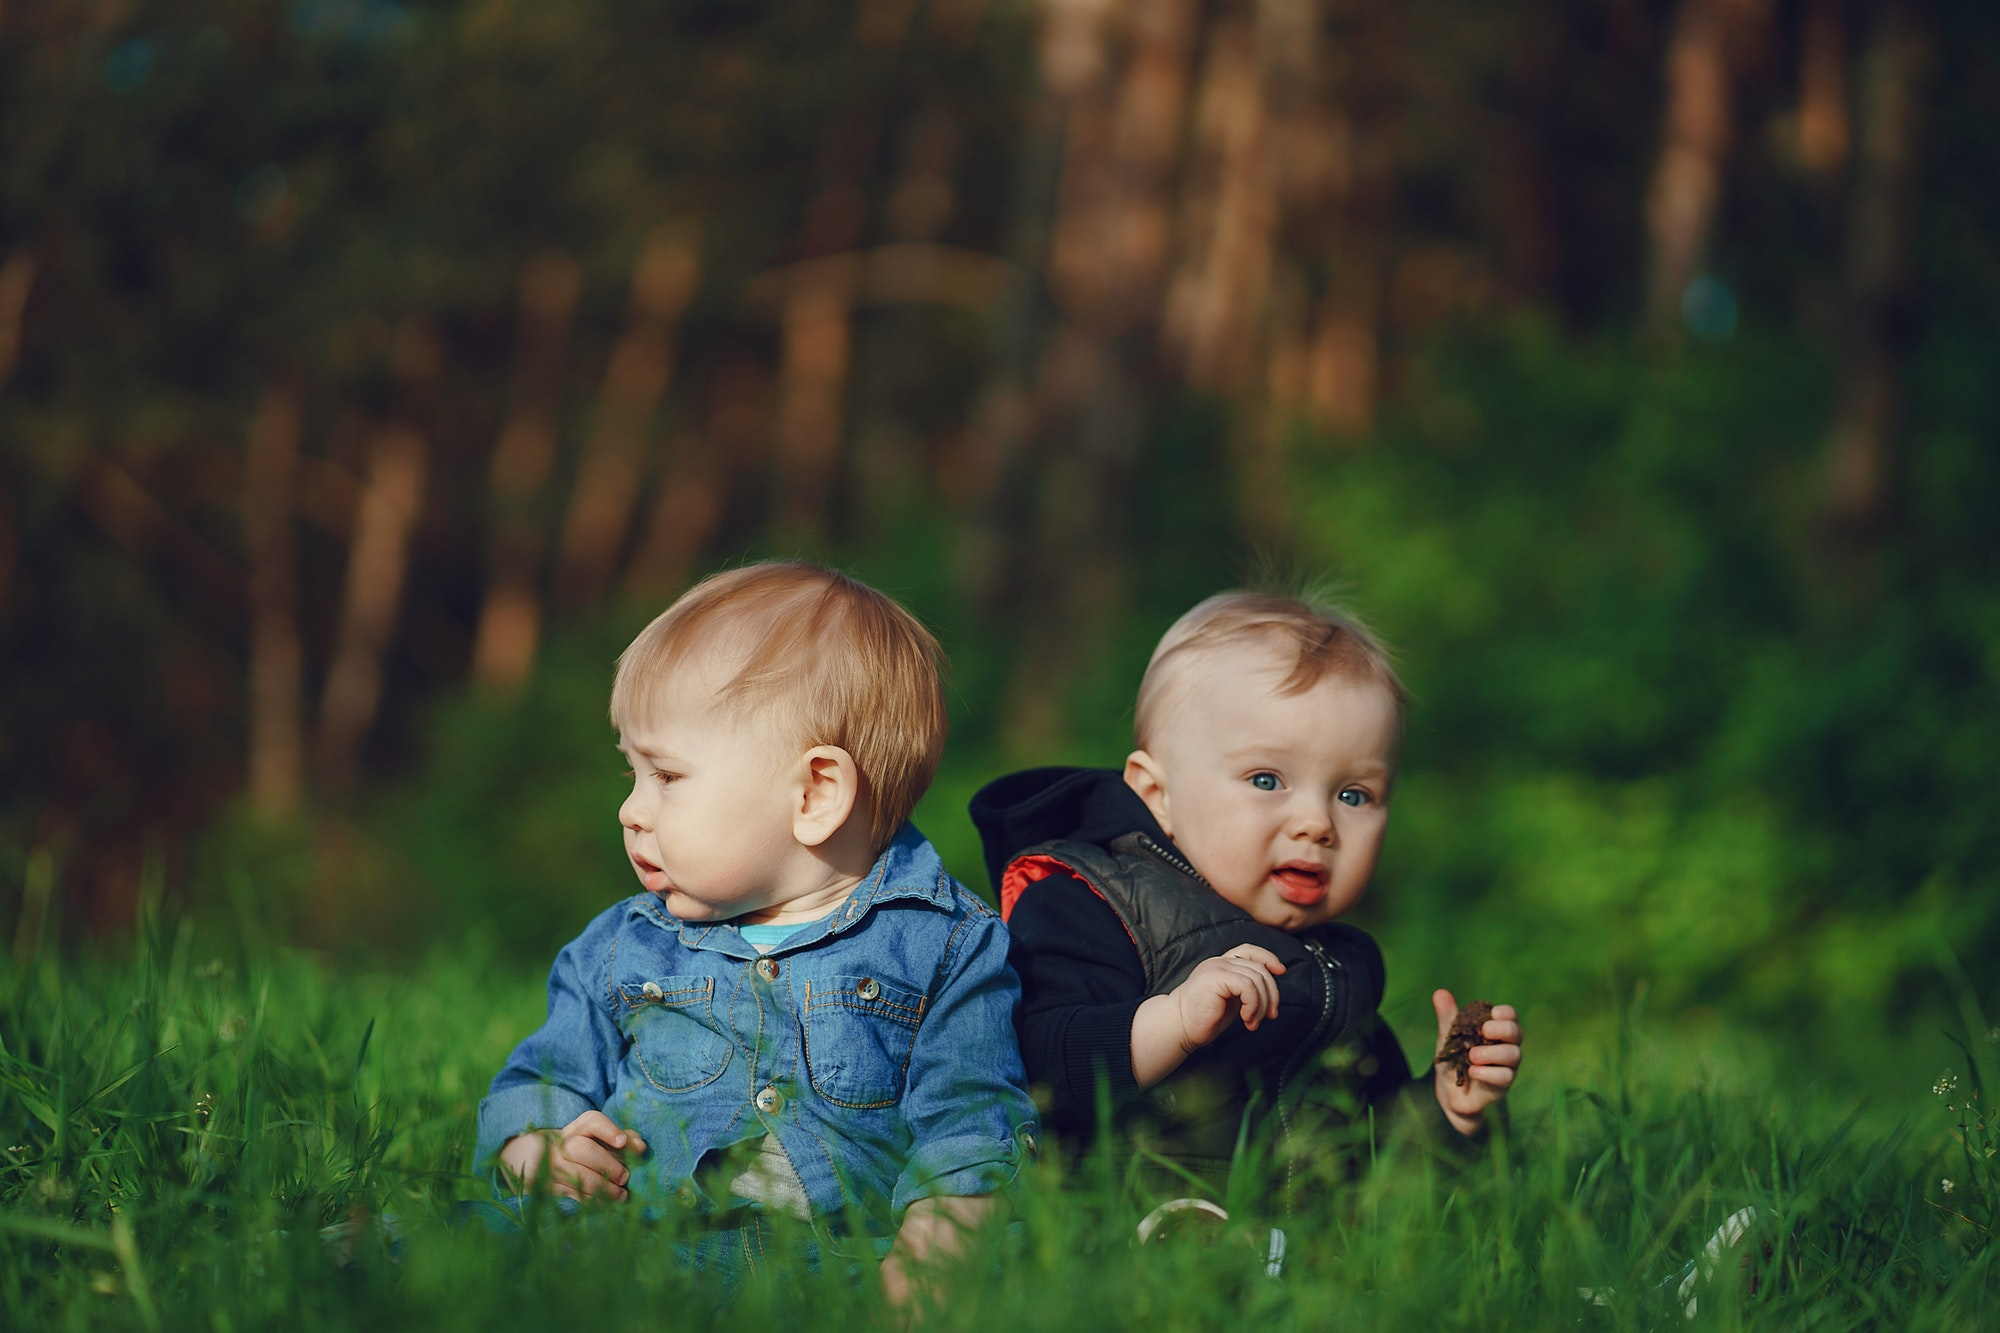 children in the grass